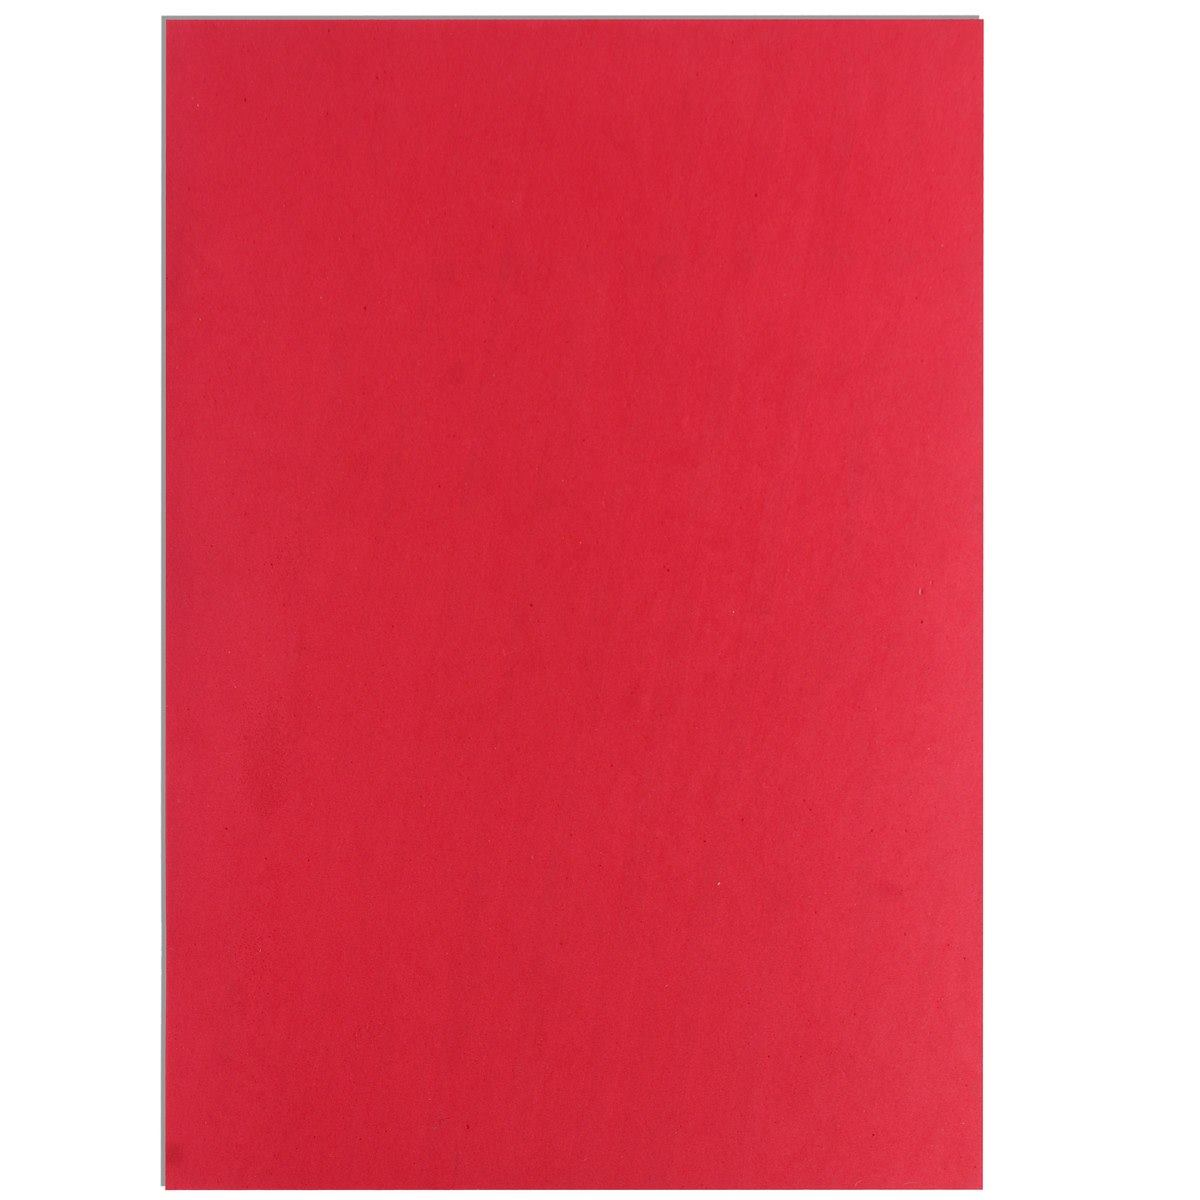 Foam Sheets A4 Size Without Sticker 3MM Red